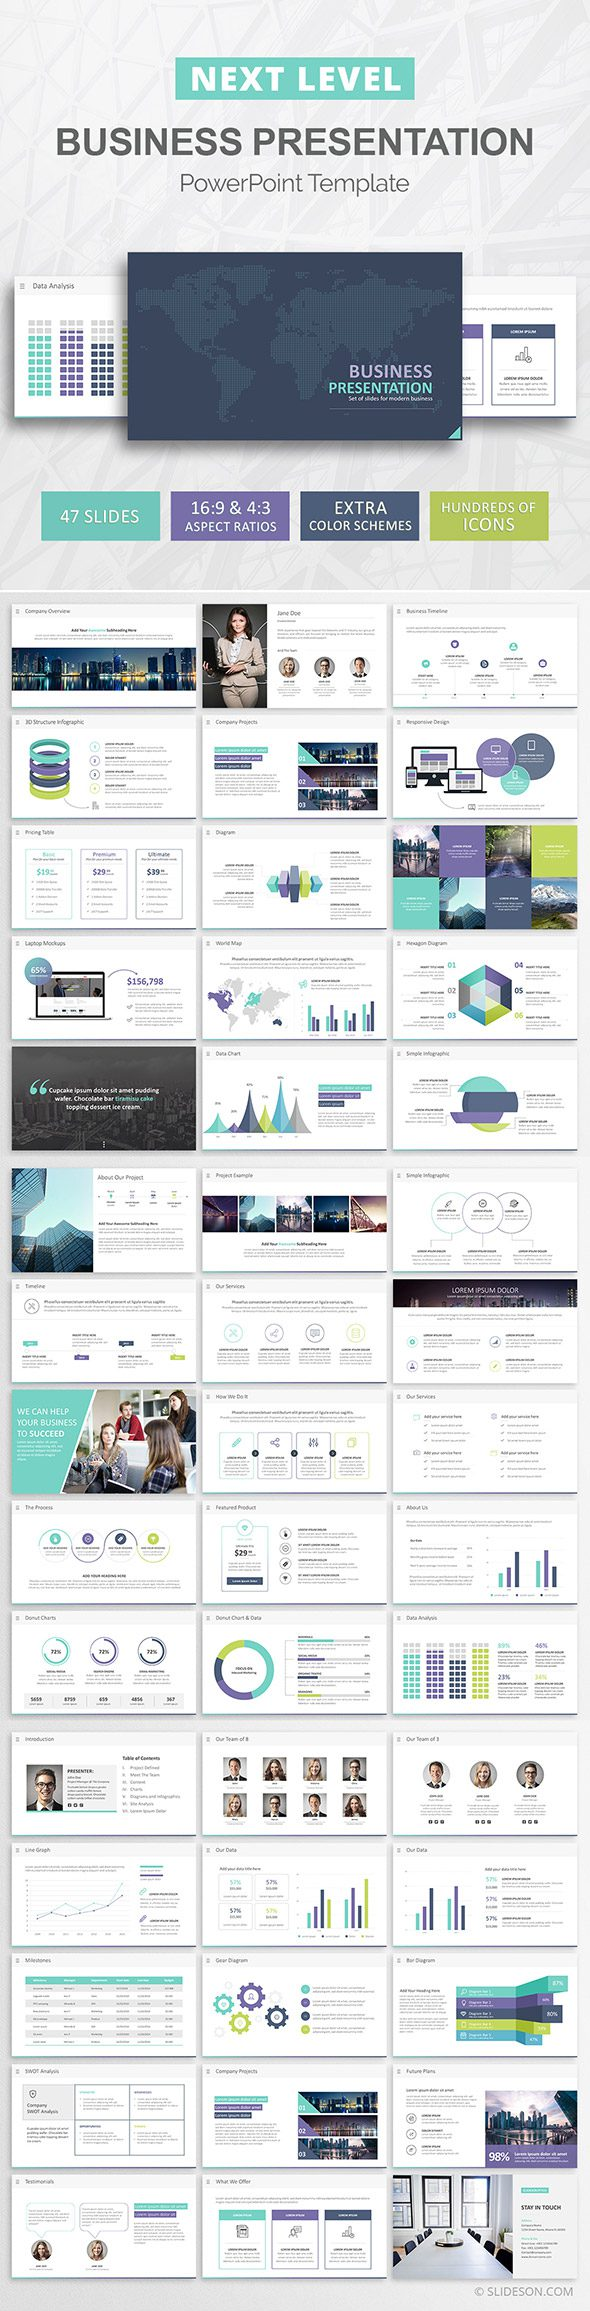 Best Business PowerPoint Template